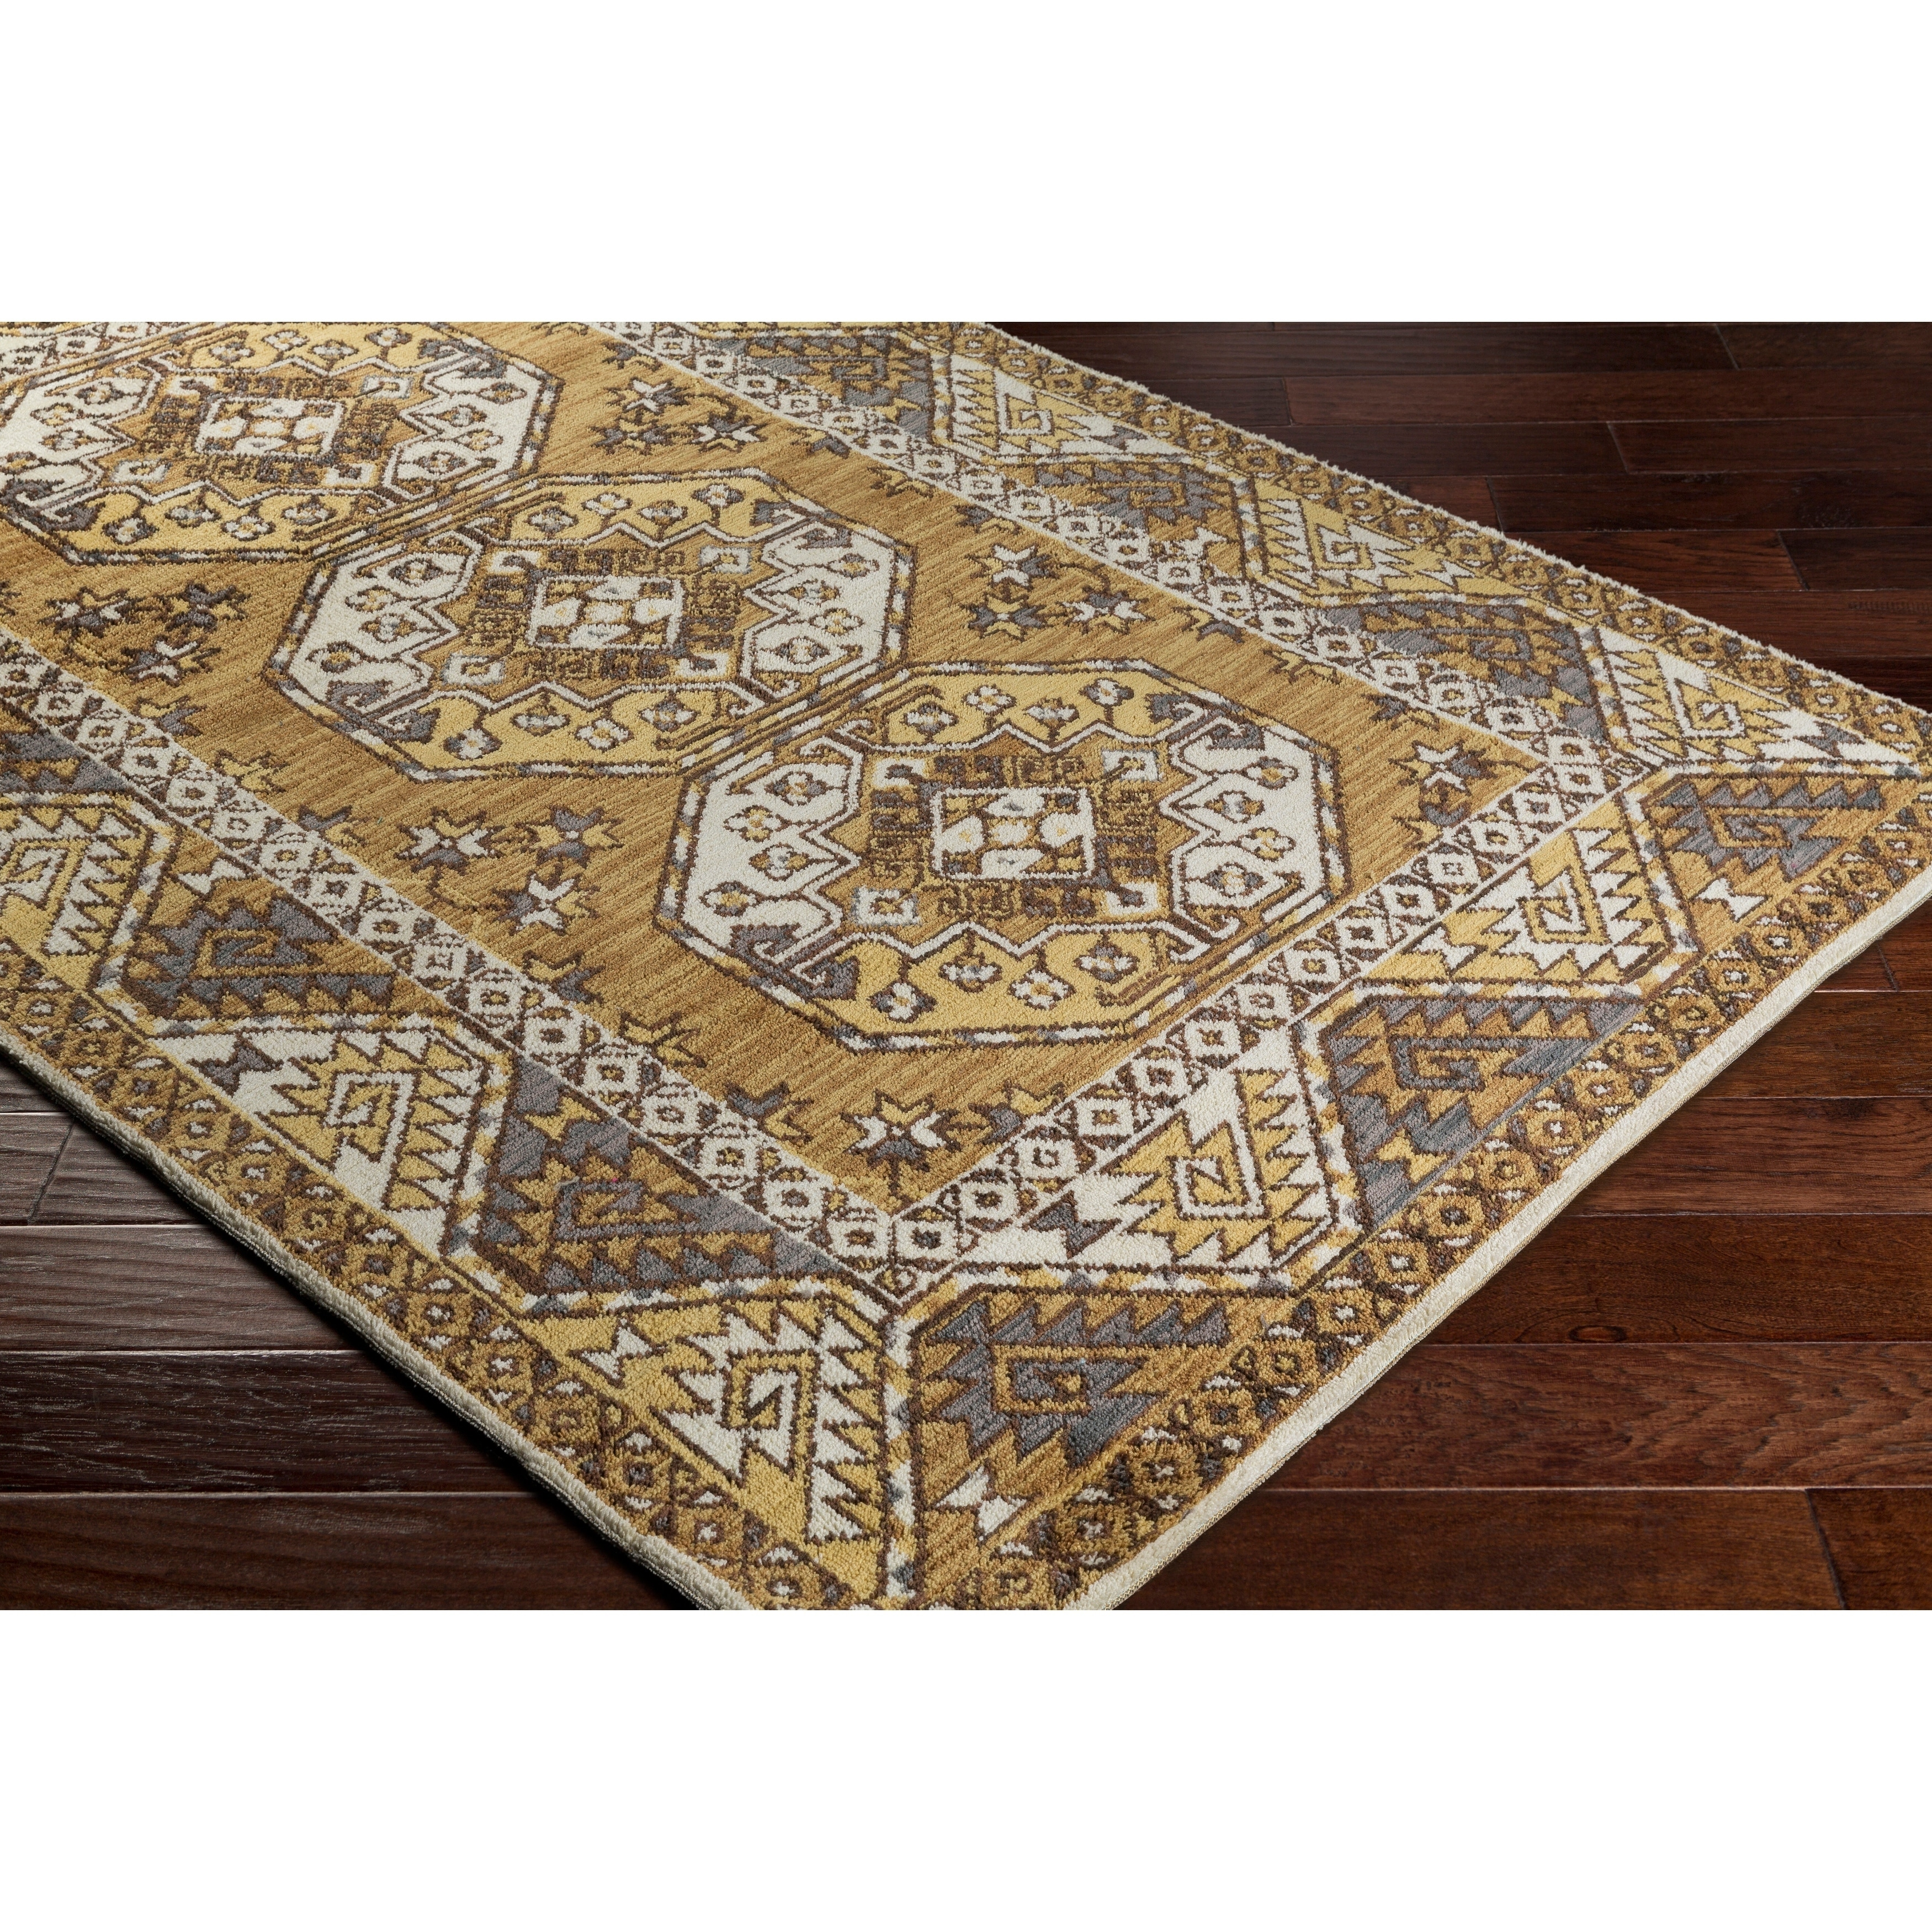 Image of: Shop Black Friday Deals On Abalos Southwestern Mustard Border Area Rug 9 X 12 9 X 12 Overstock 17096394